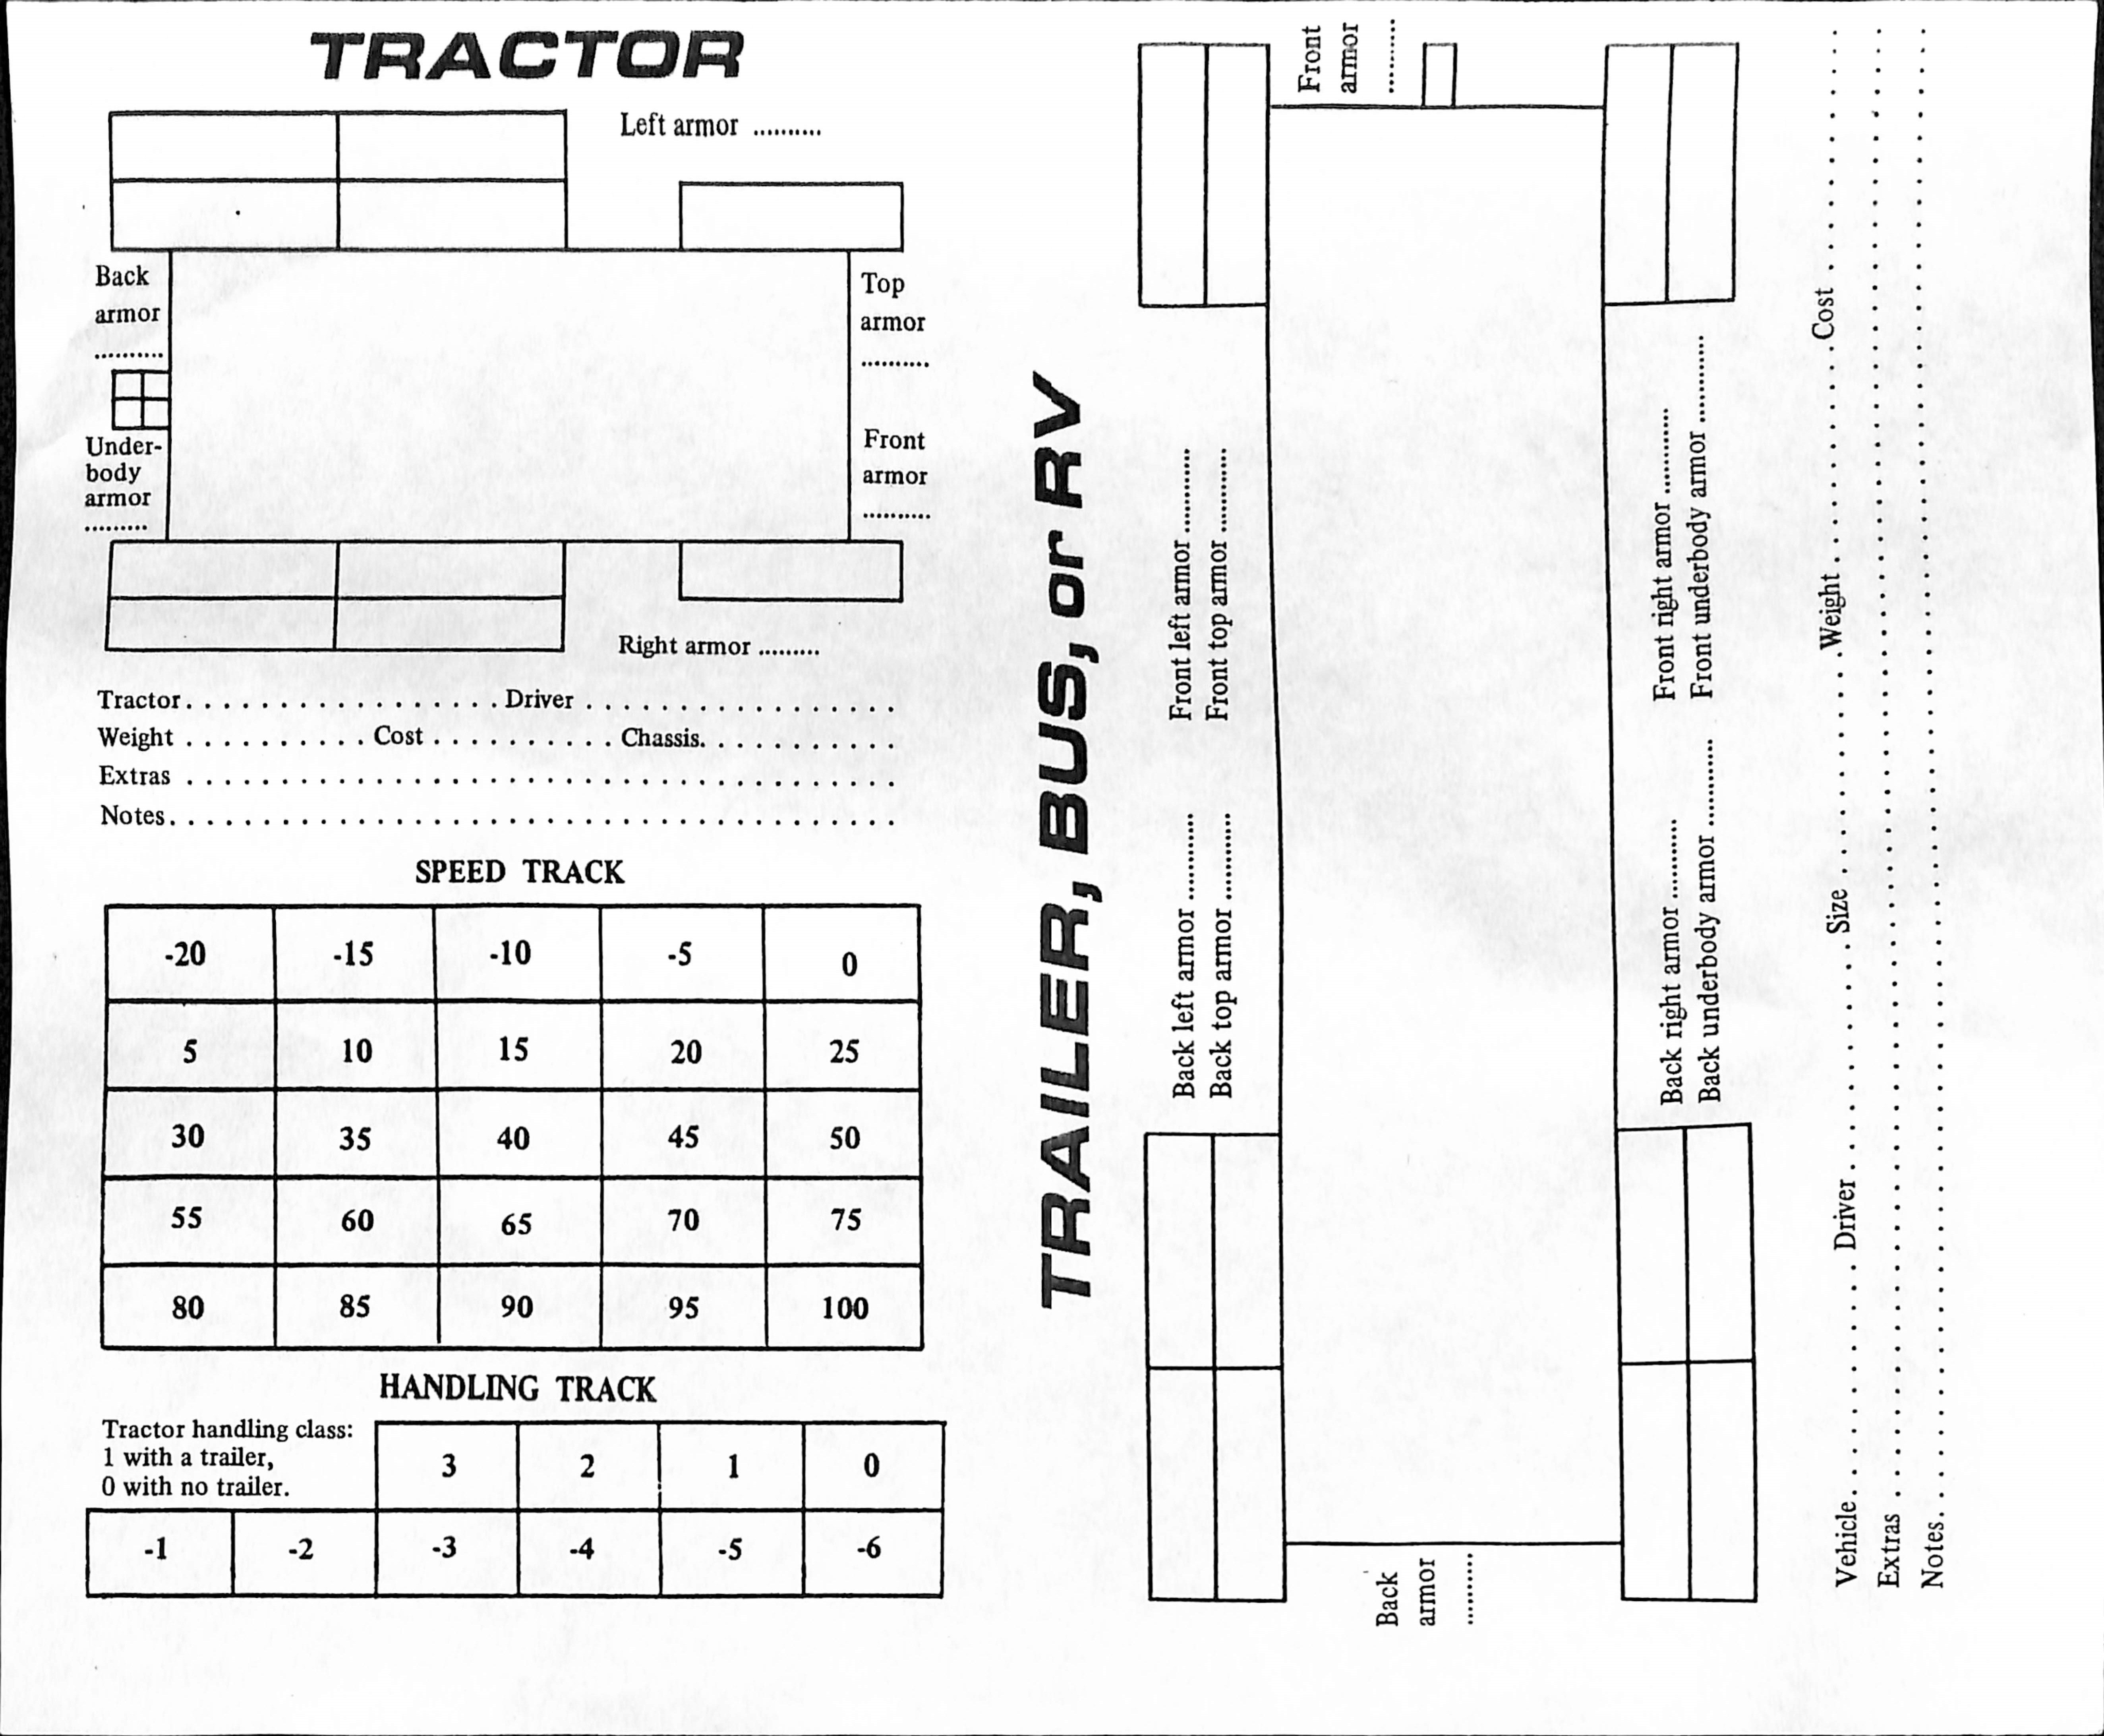 Tractor Trailer sheet